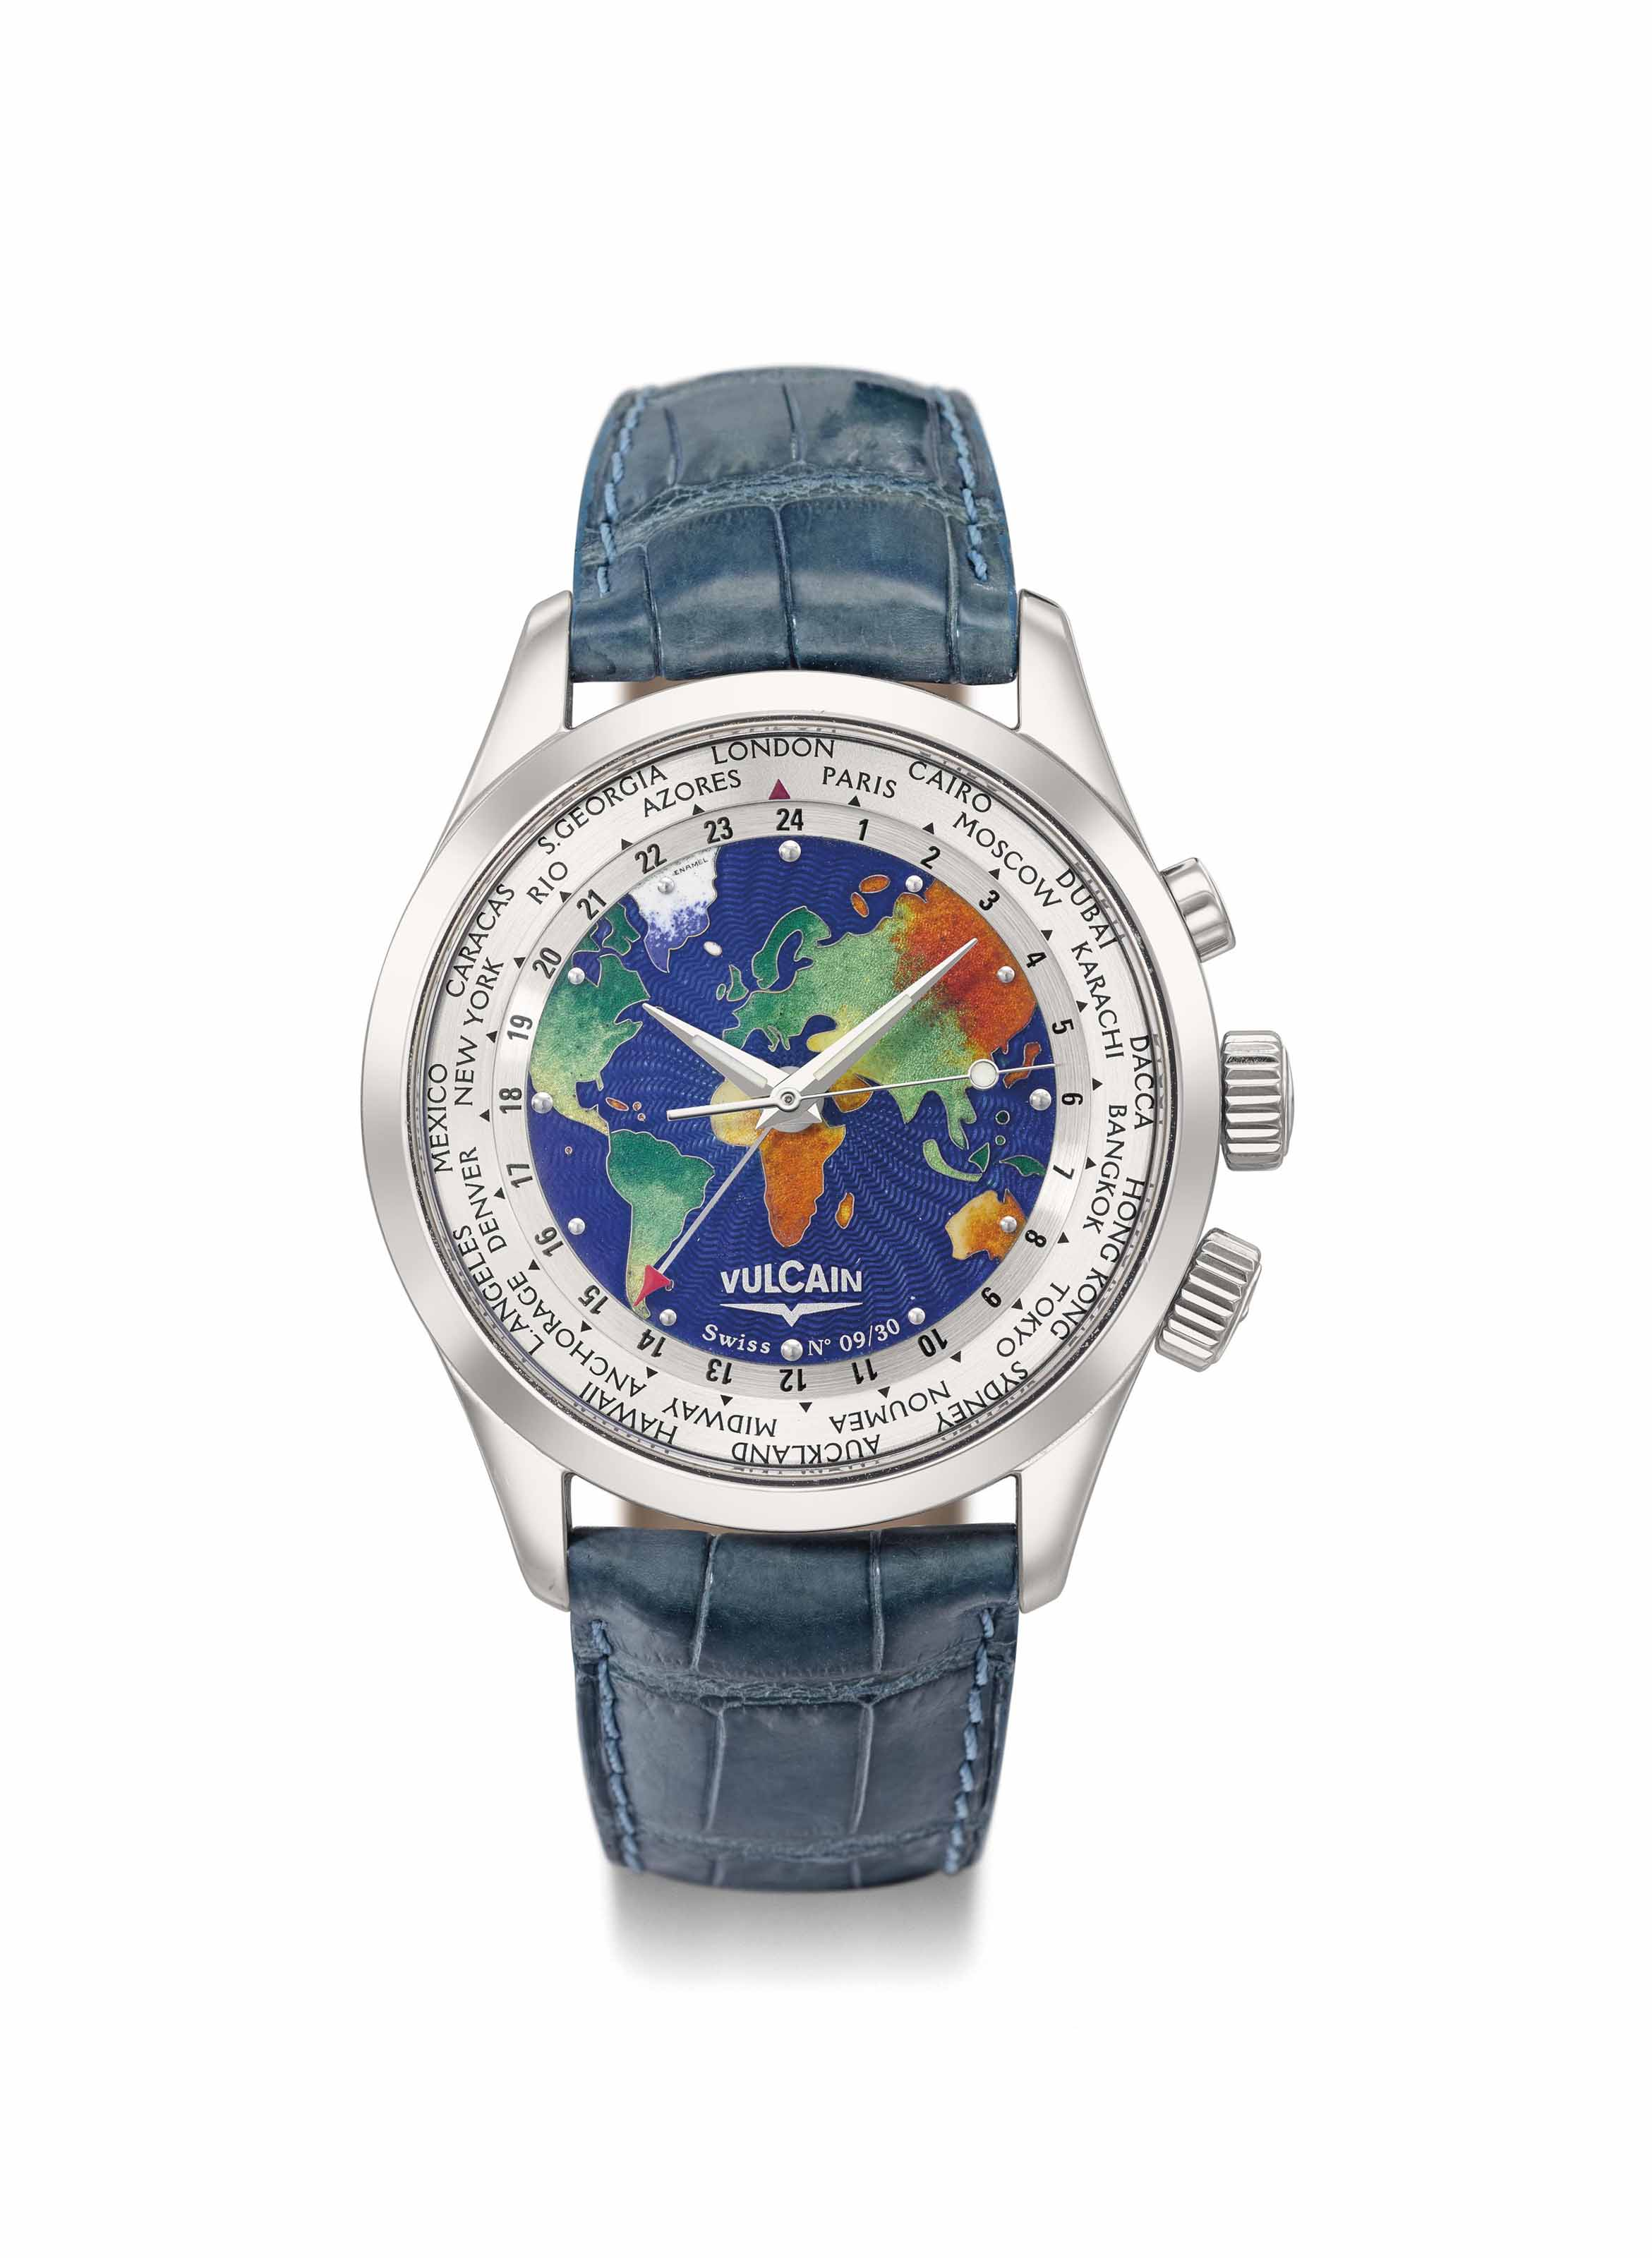 Vulcain. A rare, fine and attractive 18k white gold limited edition world time wristwatch with sweep centre seconds, alarm, cloisonné enamel dial, Certificate and box